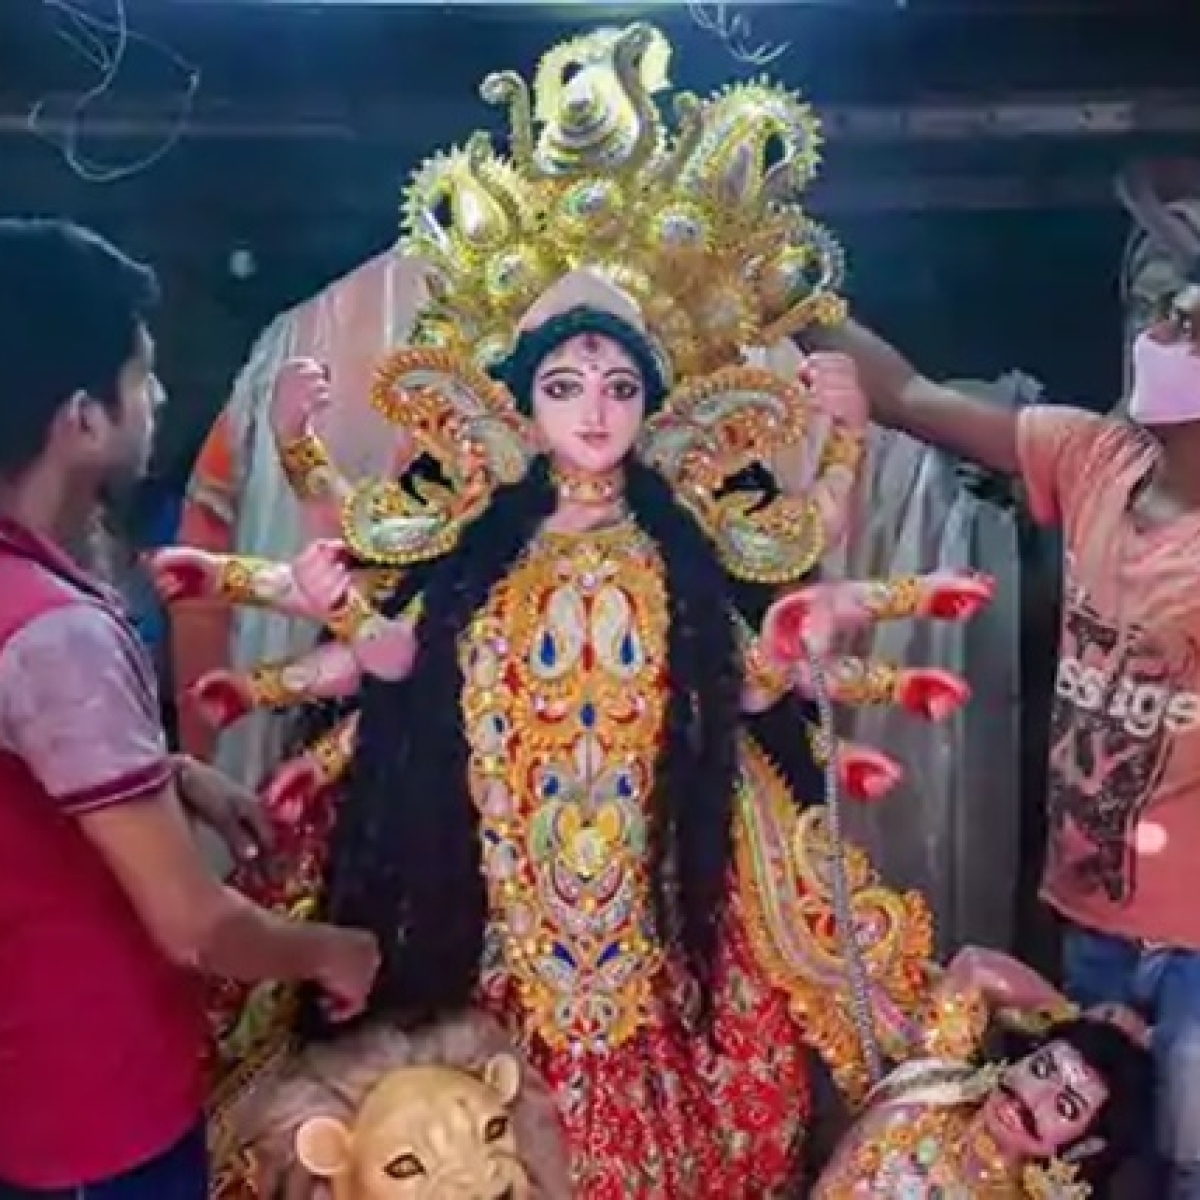 No Durga Puja celebrations at CR Park, other areas in south Delhi amid COVID-19 pandemic